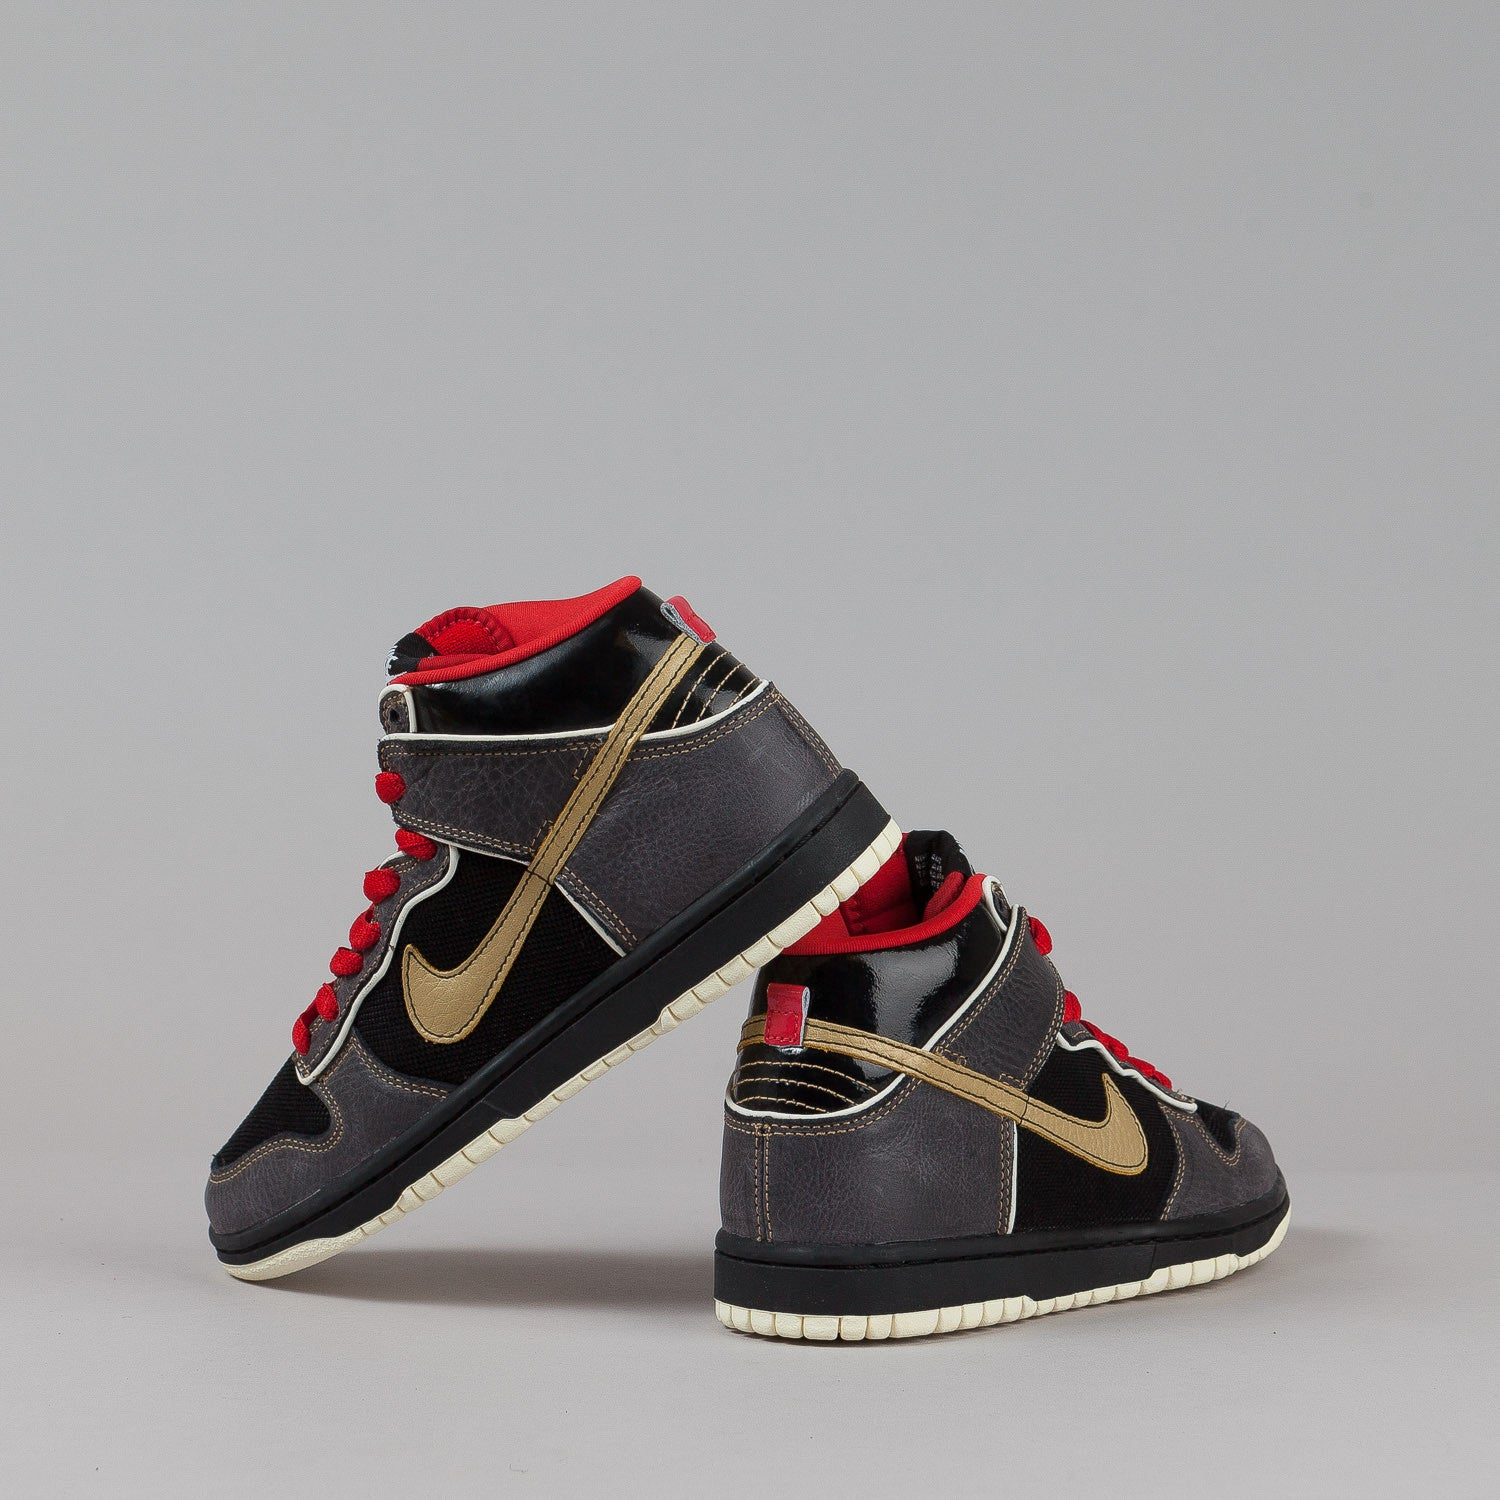 Nike SB Dunk High Premium Shoes - Black / Metallic Gold